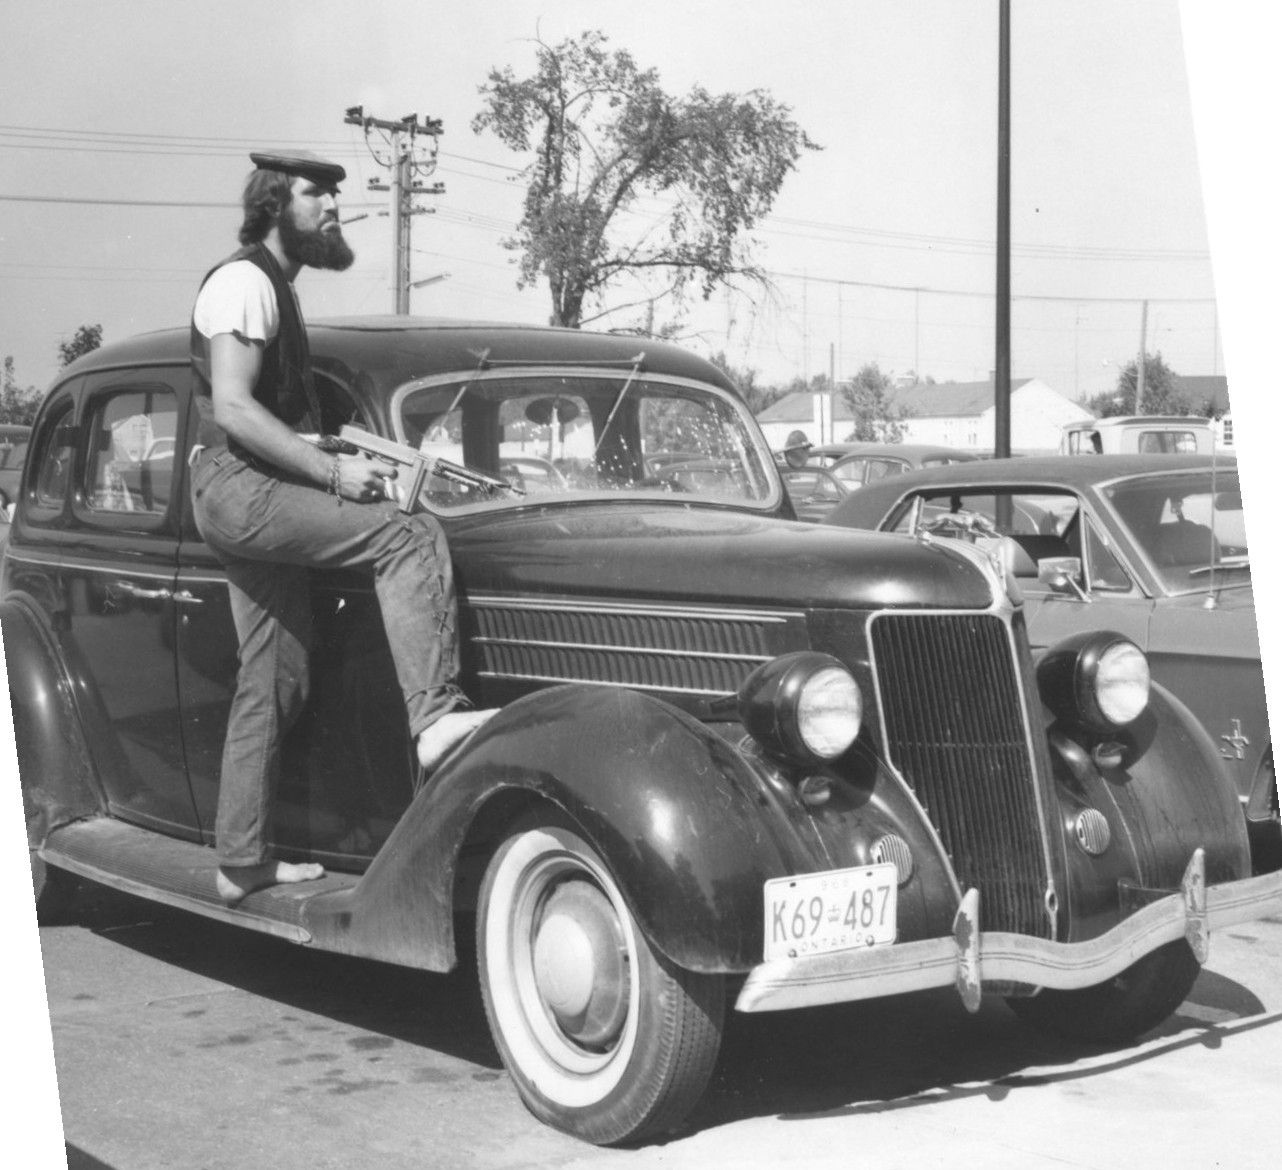 Wlu Student Posing With A 1936 Ford In 1968 Vintage